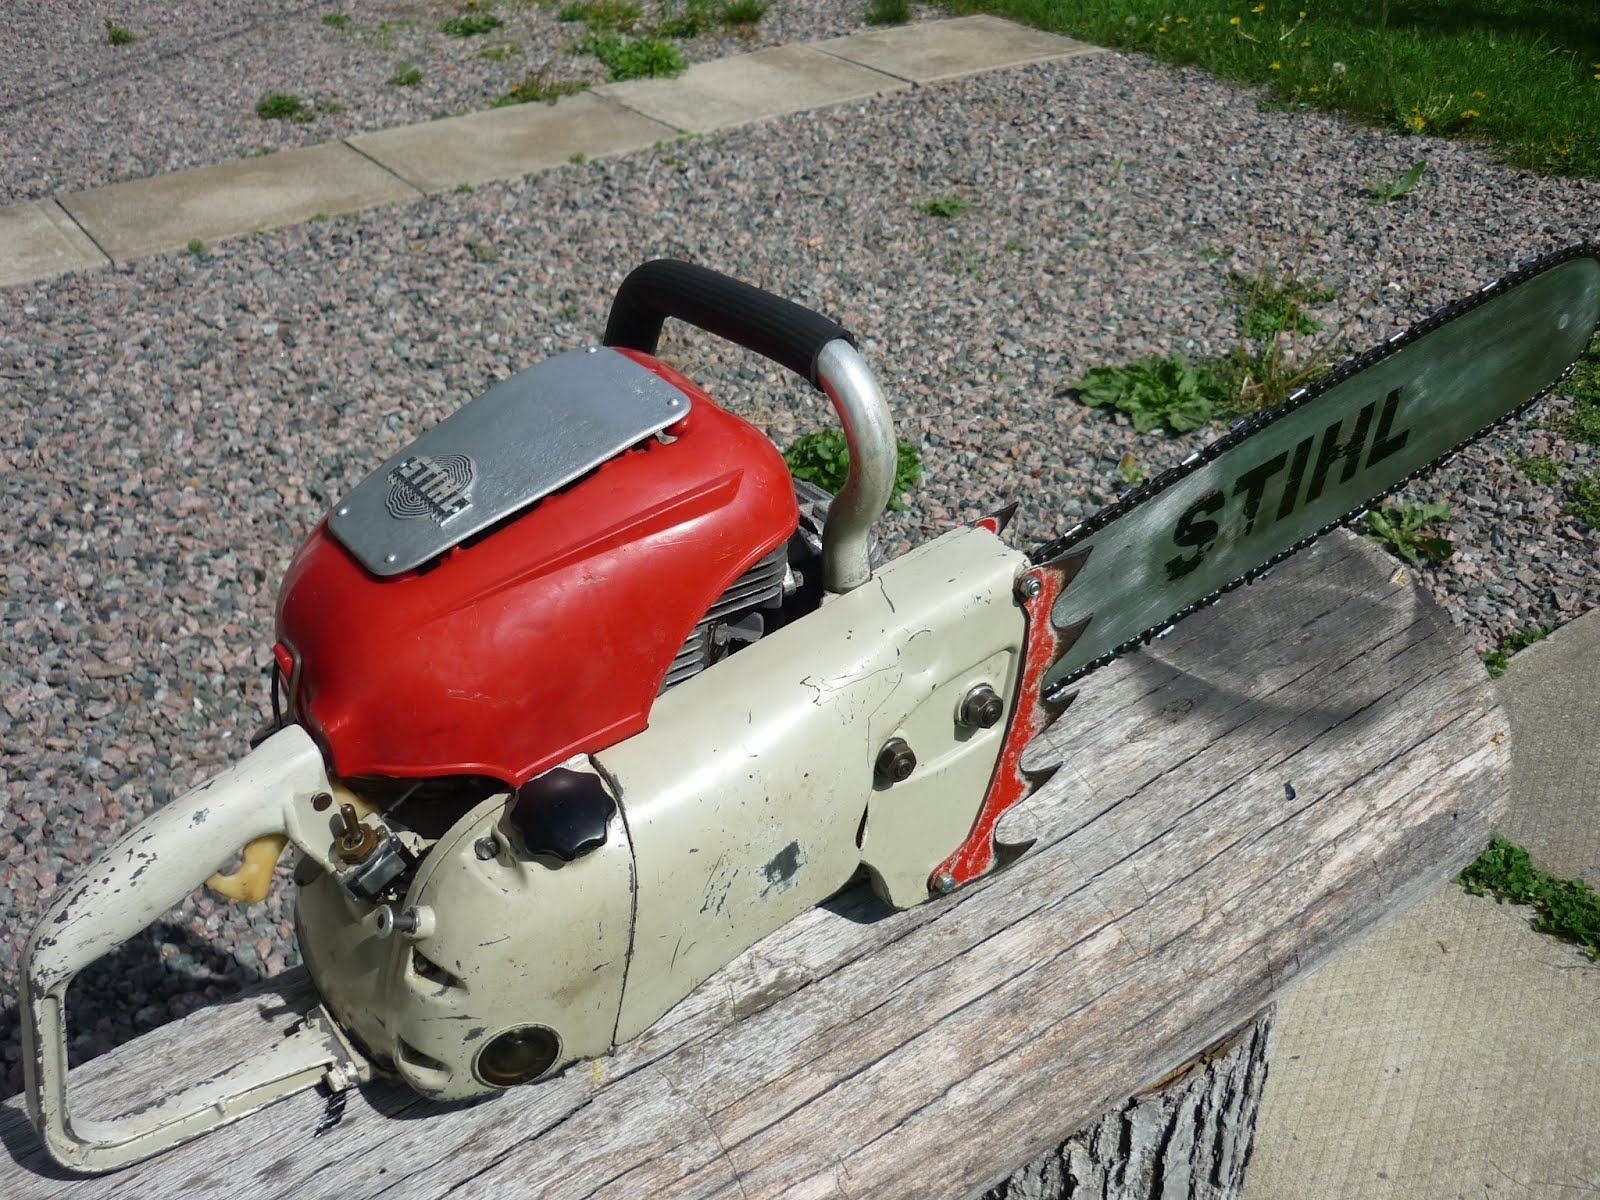 Antique Stihl Chainsaw Related Keywords & Suggestions - Antique